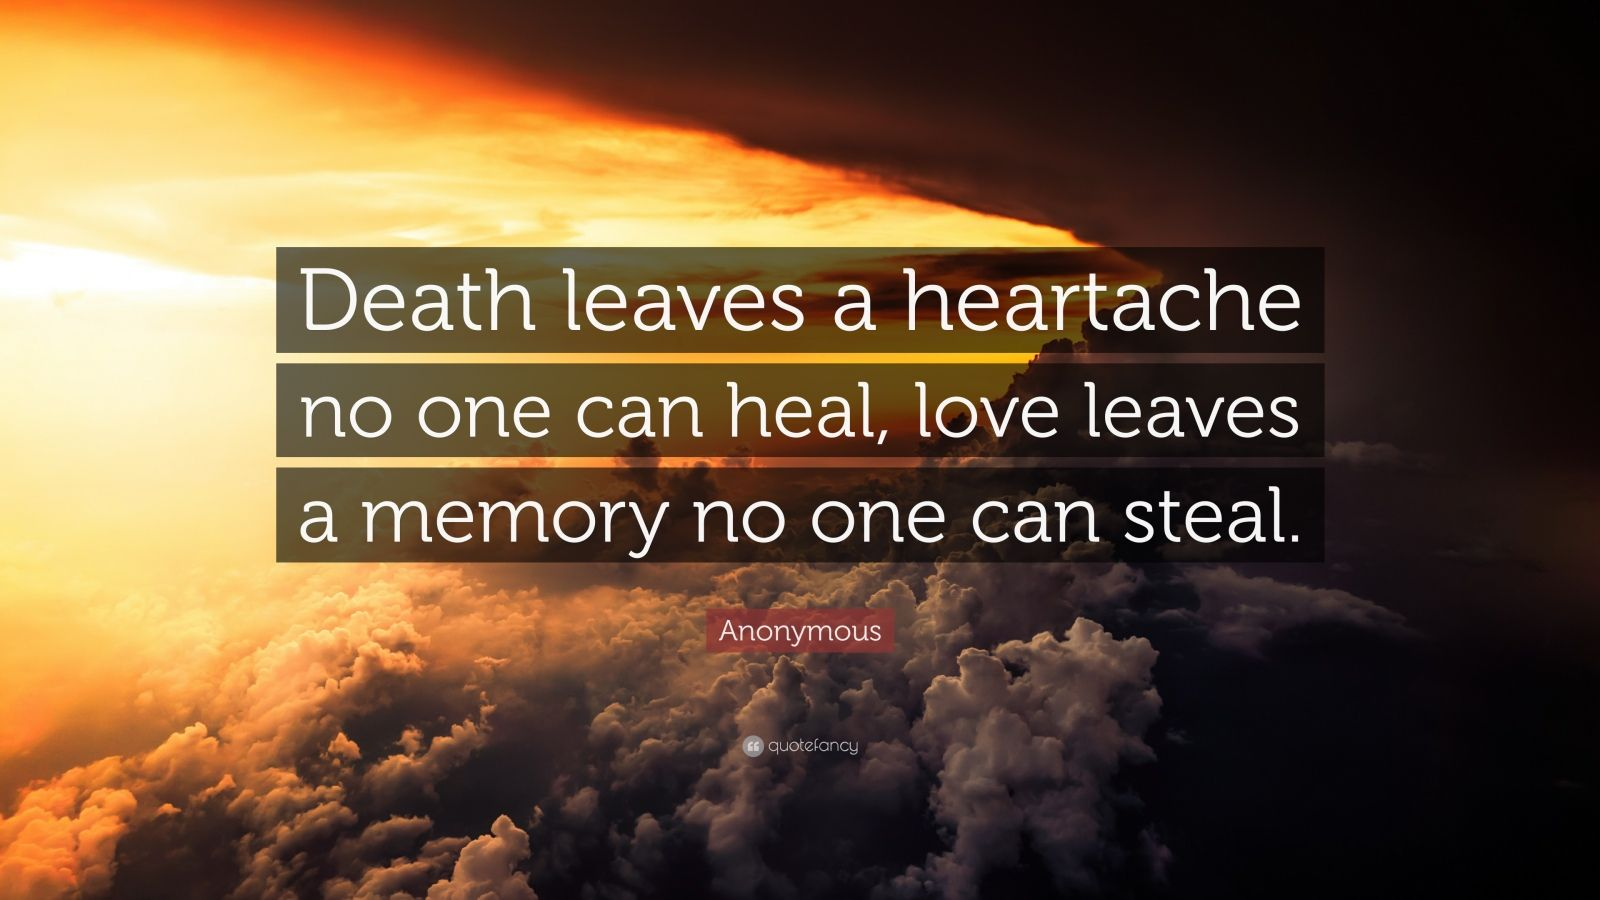 Motivational Workout Wallpapers With Quotes Anonymous Quote Death Leaves A Heartache No One Can Heal